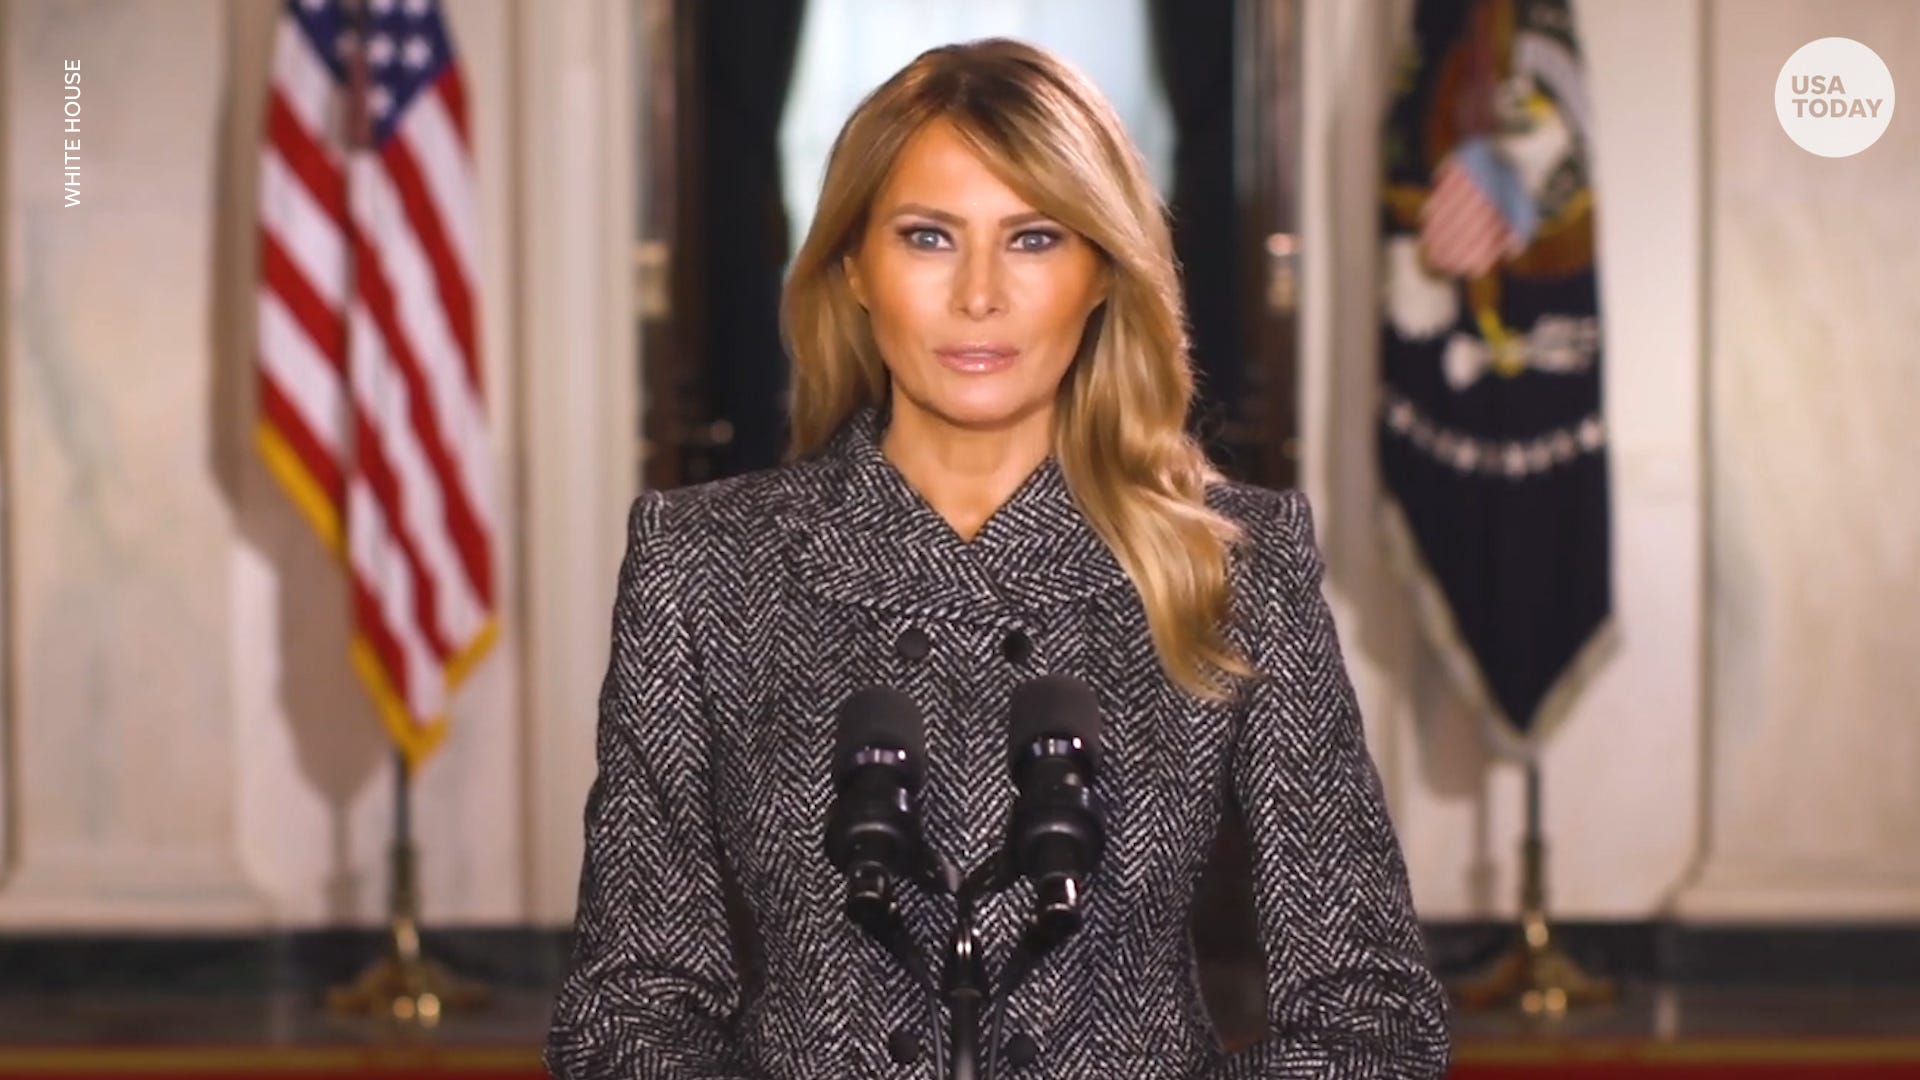 First lady Melania Trump addresses Americans in farewell message